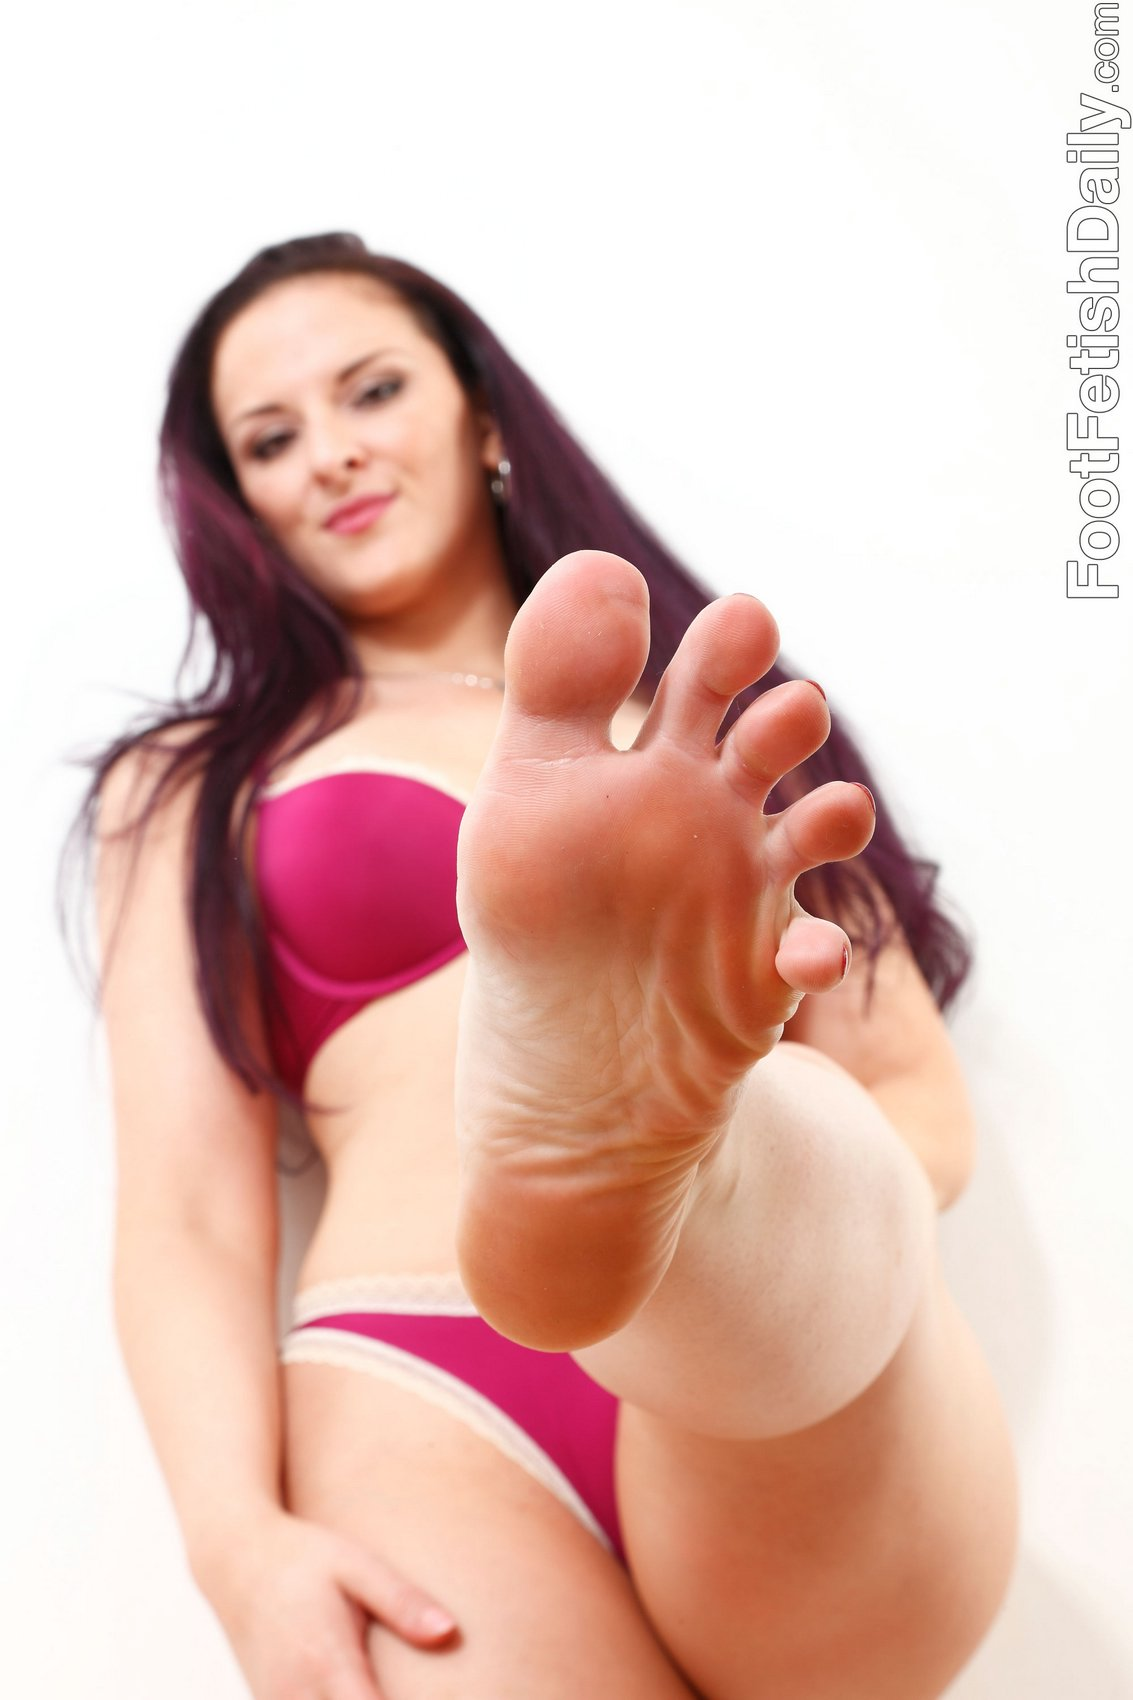 Lesbian foot worship for free yoga lessons 6